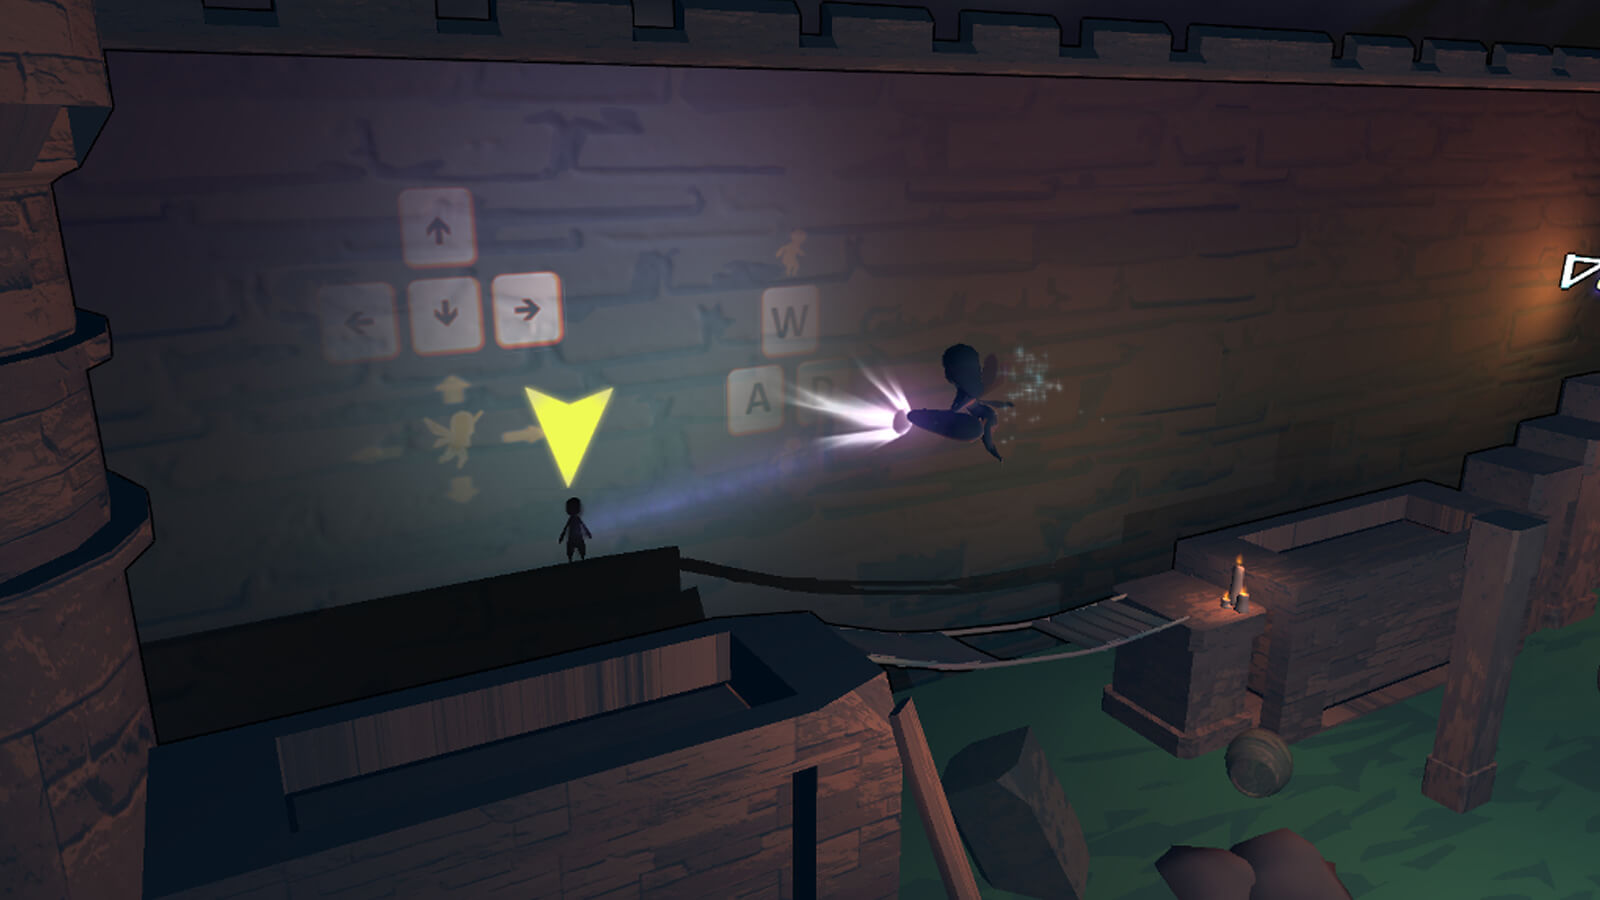 The player's fairy character is in the foreground shining a light illuminating the game's controls on the wall behind